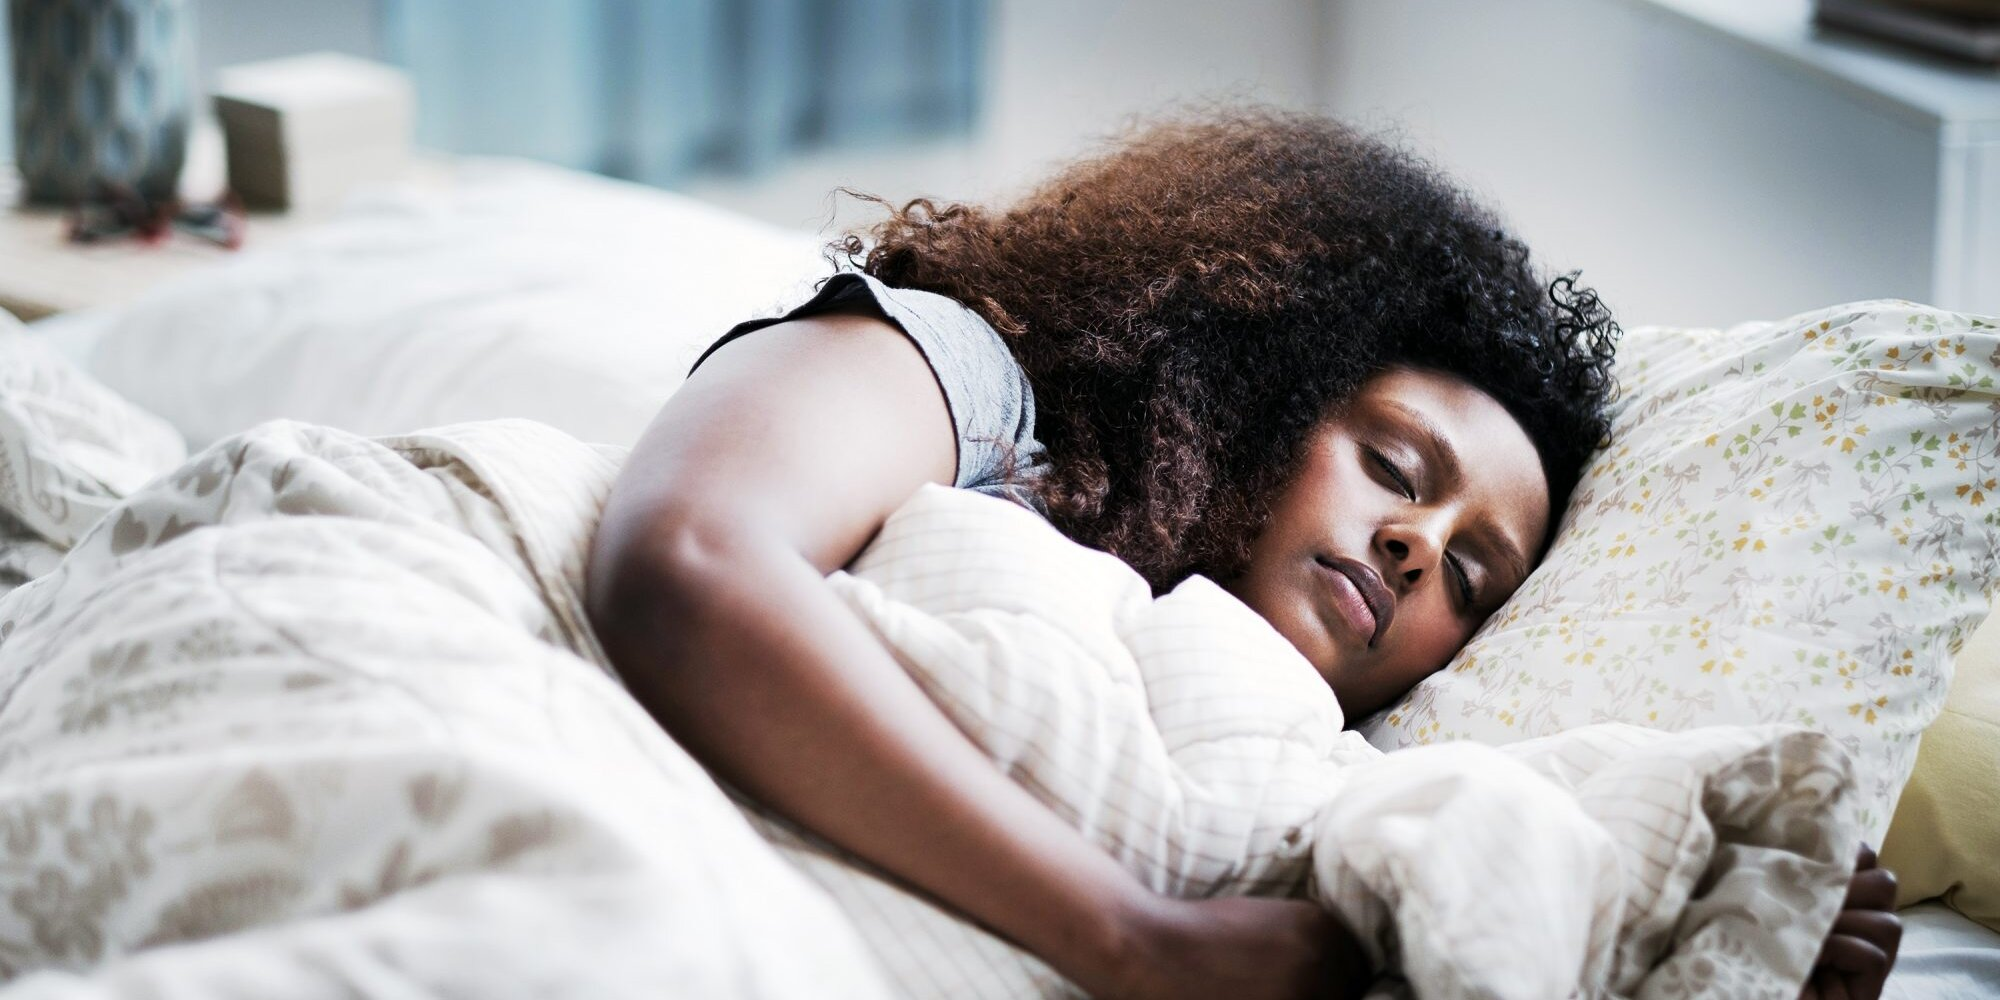 How Well You Sleep Matters More Than How Much You Sleep—Here's How to Boost Your Sleep Quality